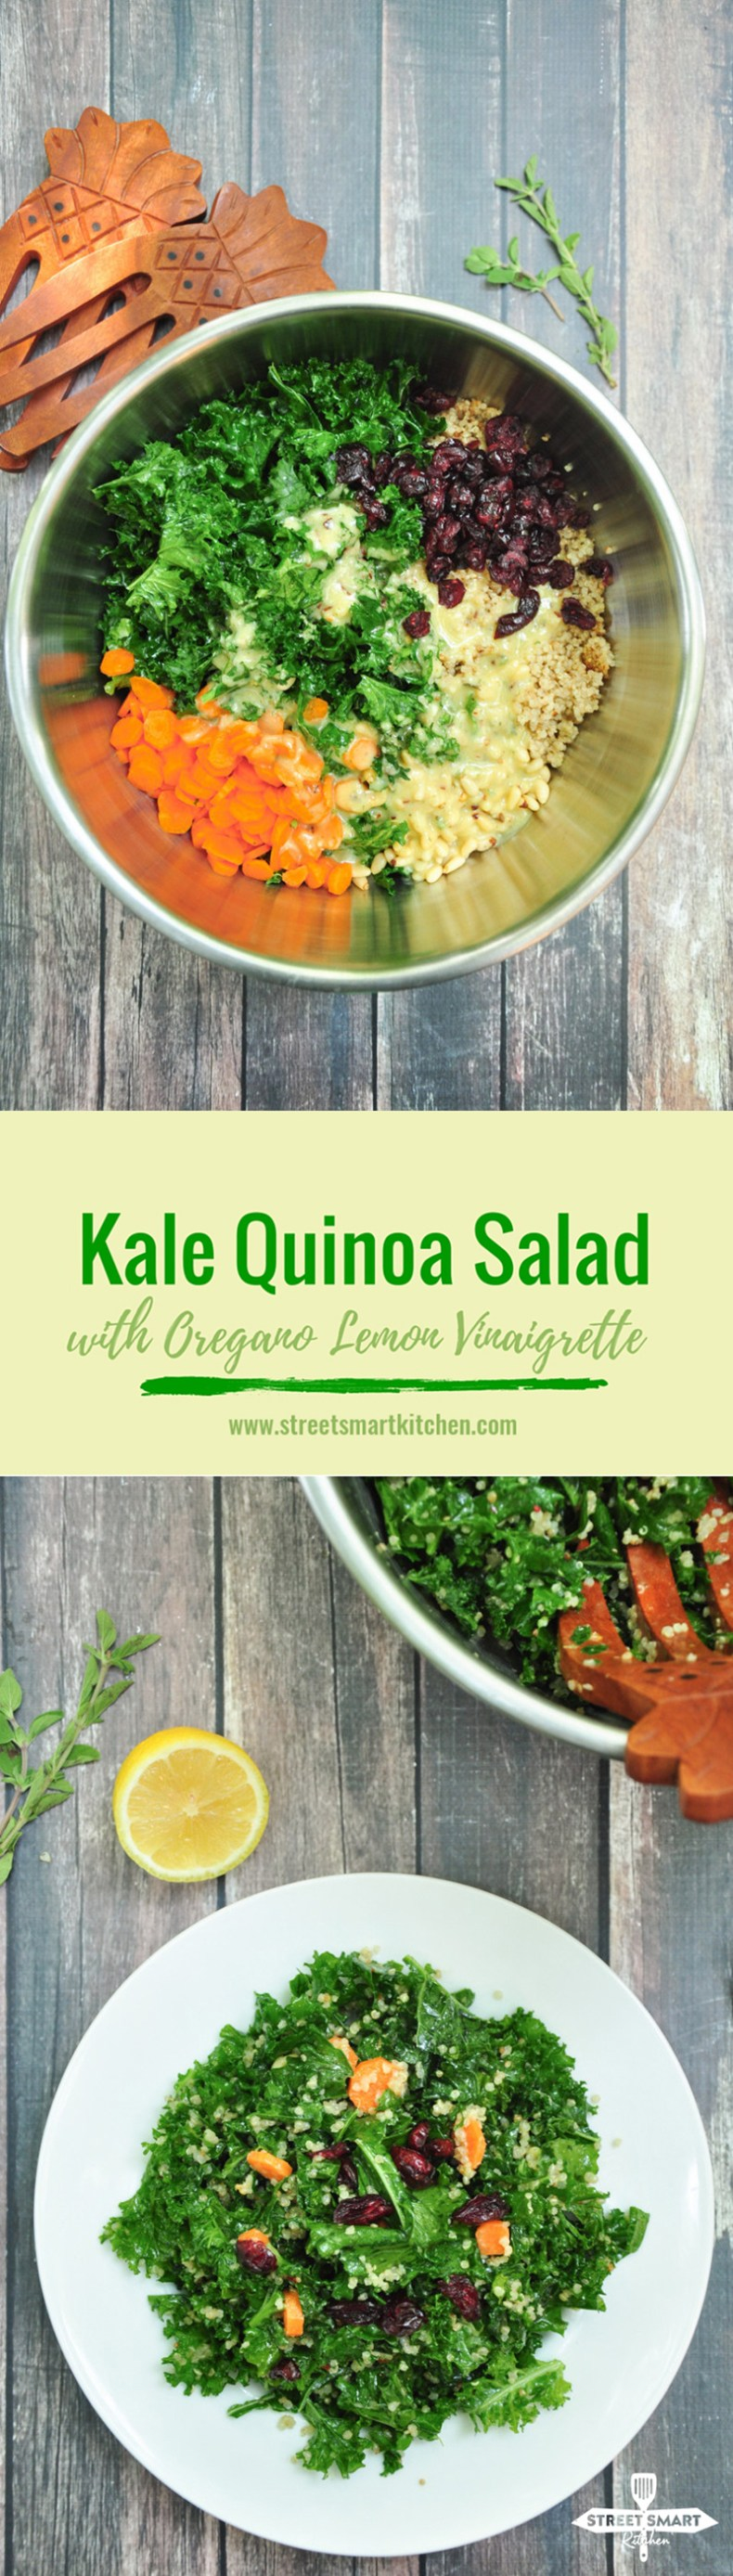 Kale Quinoa Salad with Oregano Lemon Vinaigrette-5 SSK